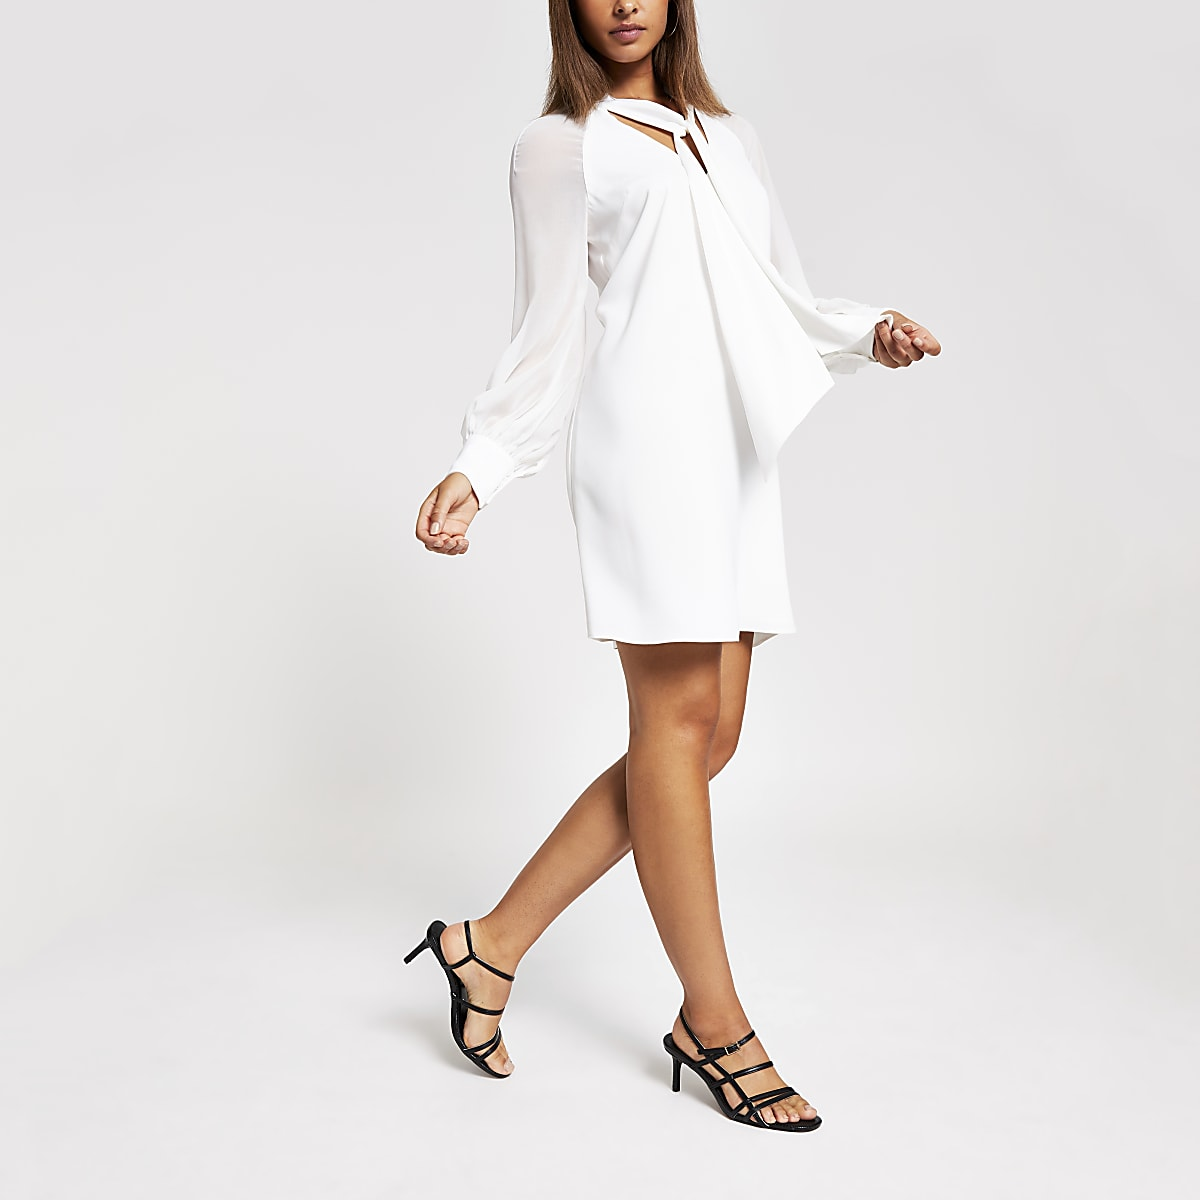 White Chiffon Tie Neck Swing Mini Dress